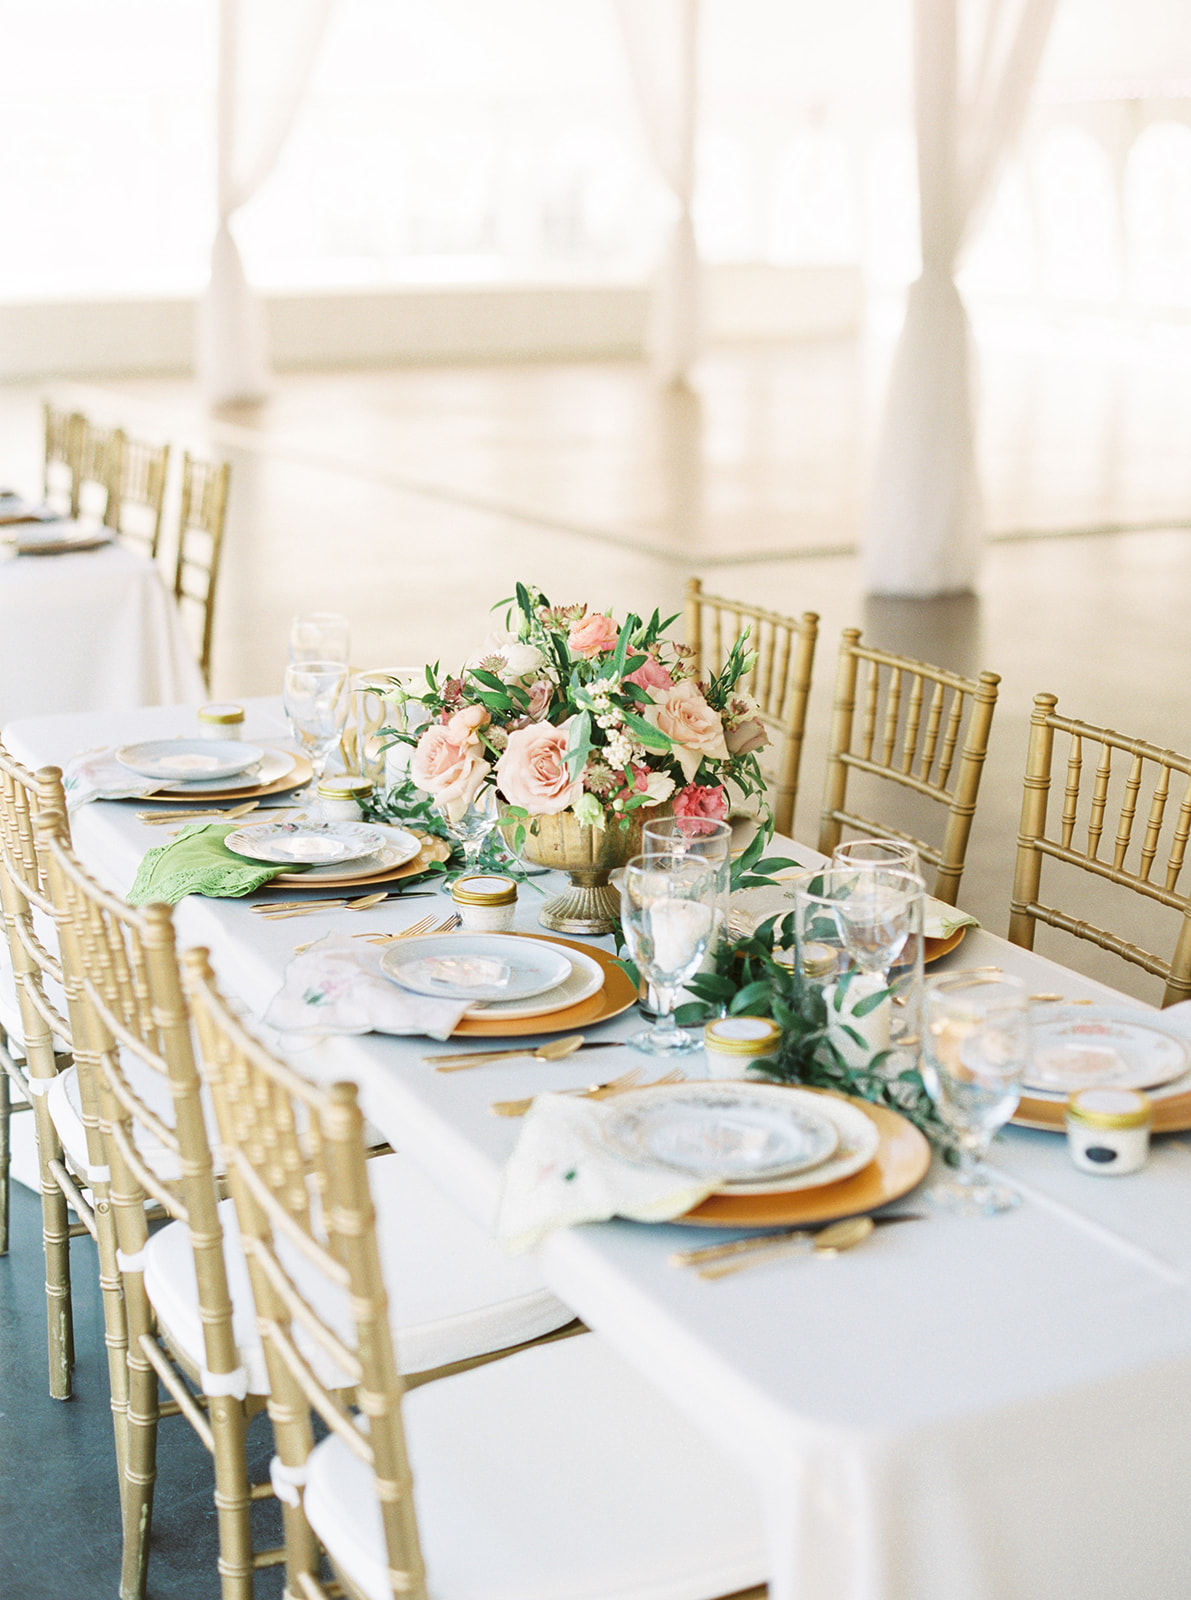 Wedding Tablescape: Feminine and Whimsical Clark Gardens Wedding